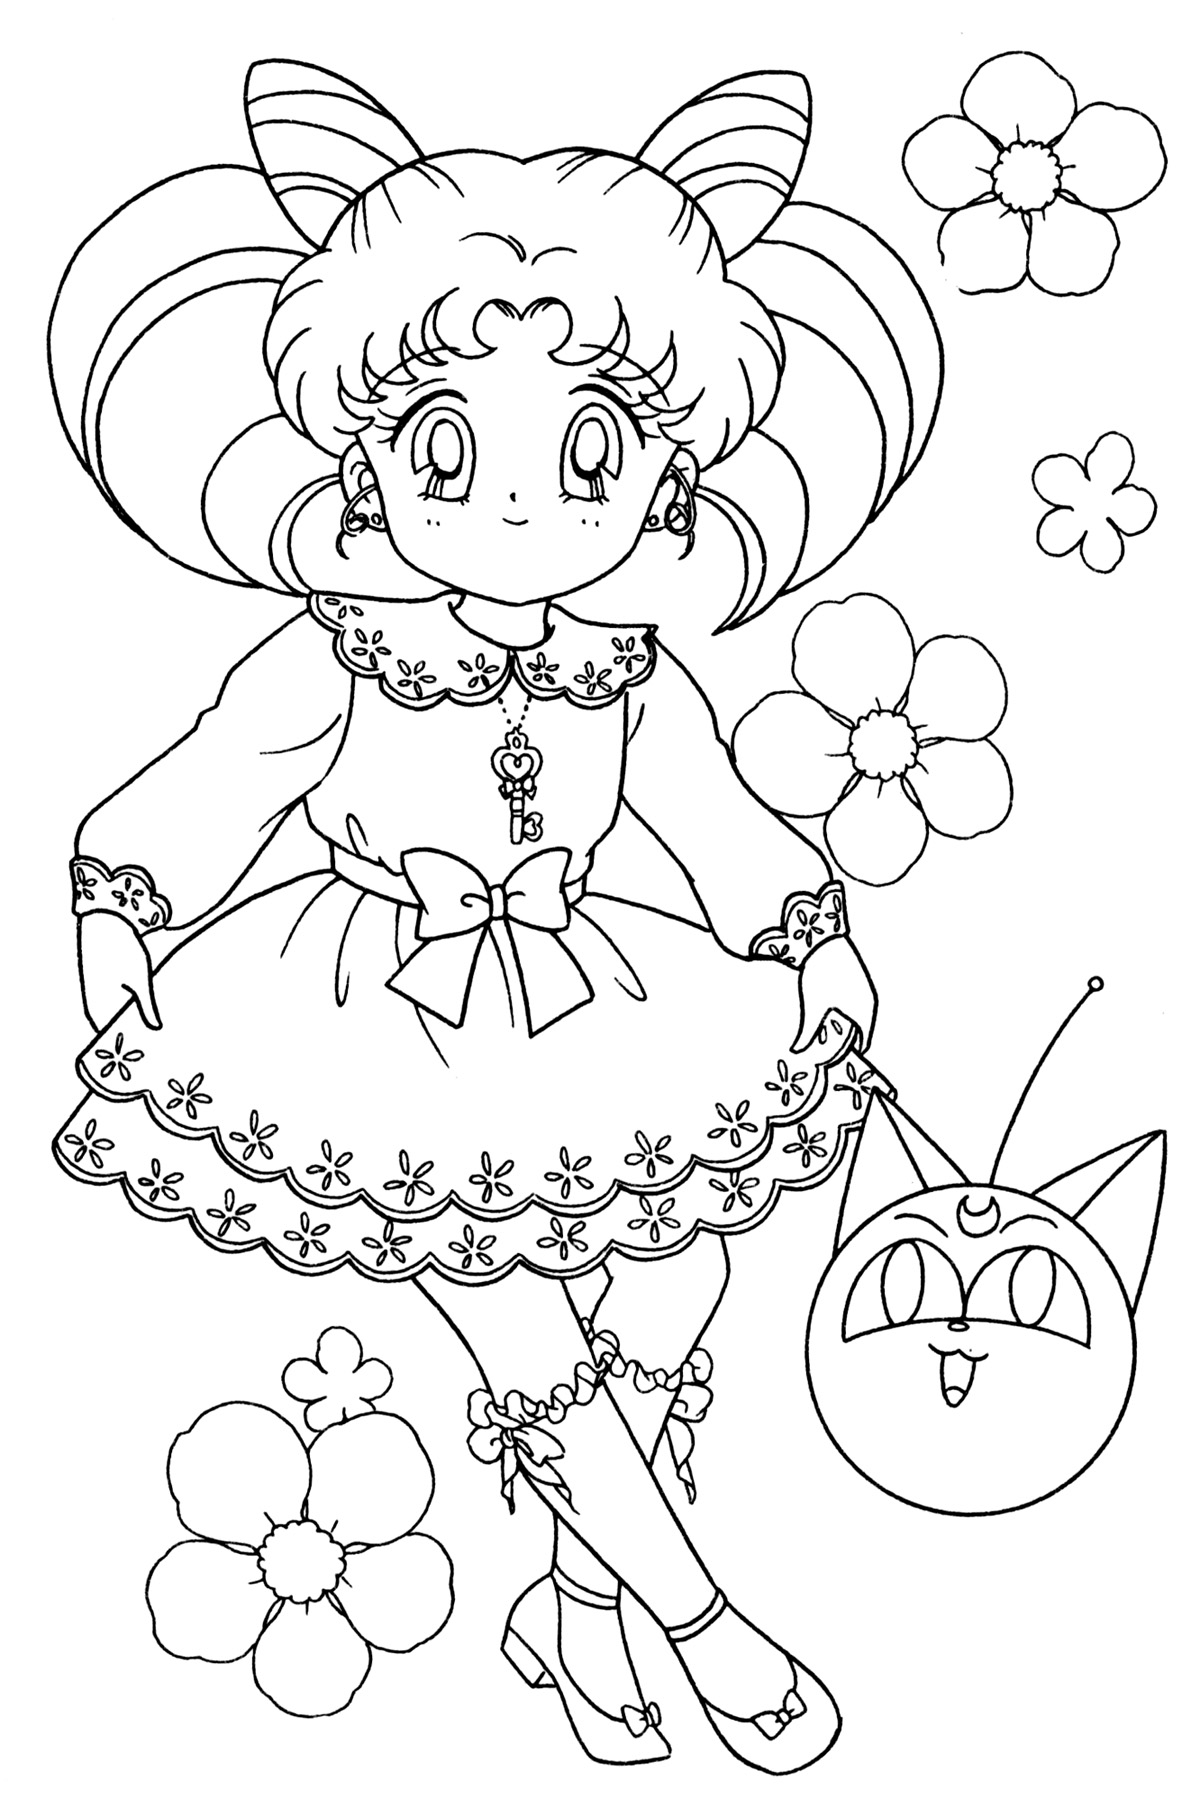 chibi moon coloring pages - photo#19